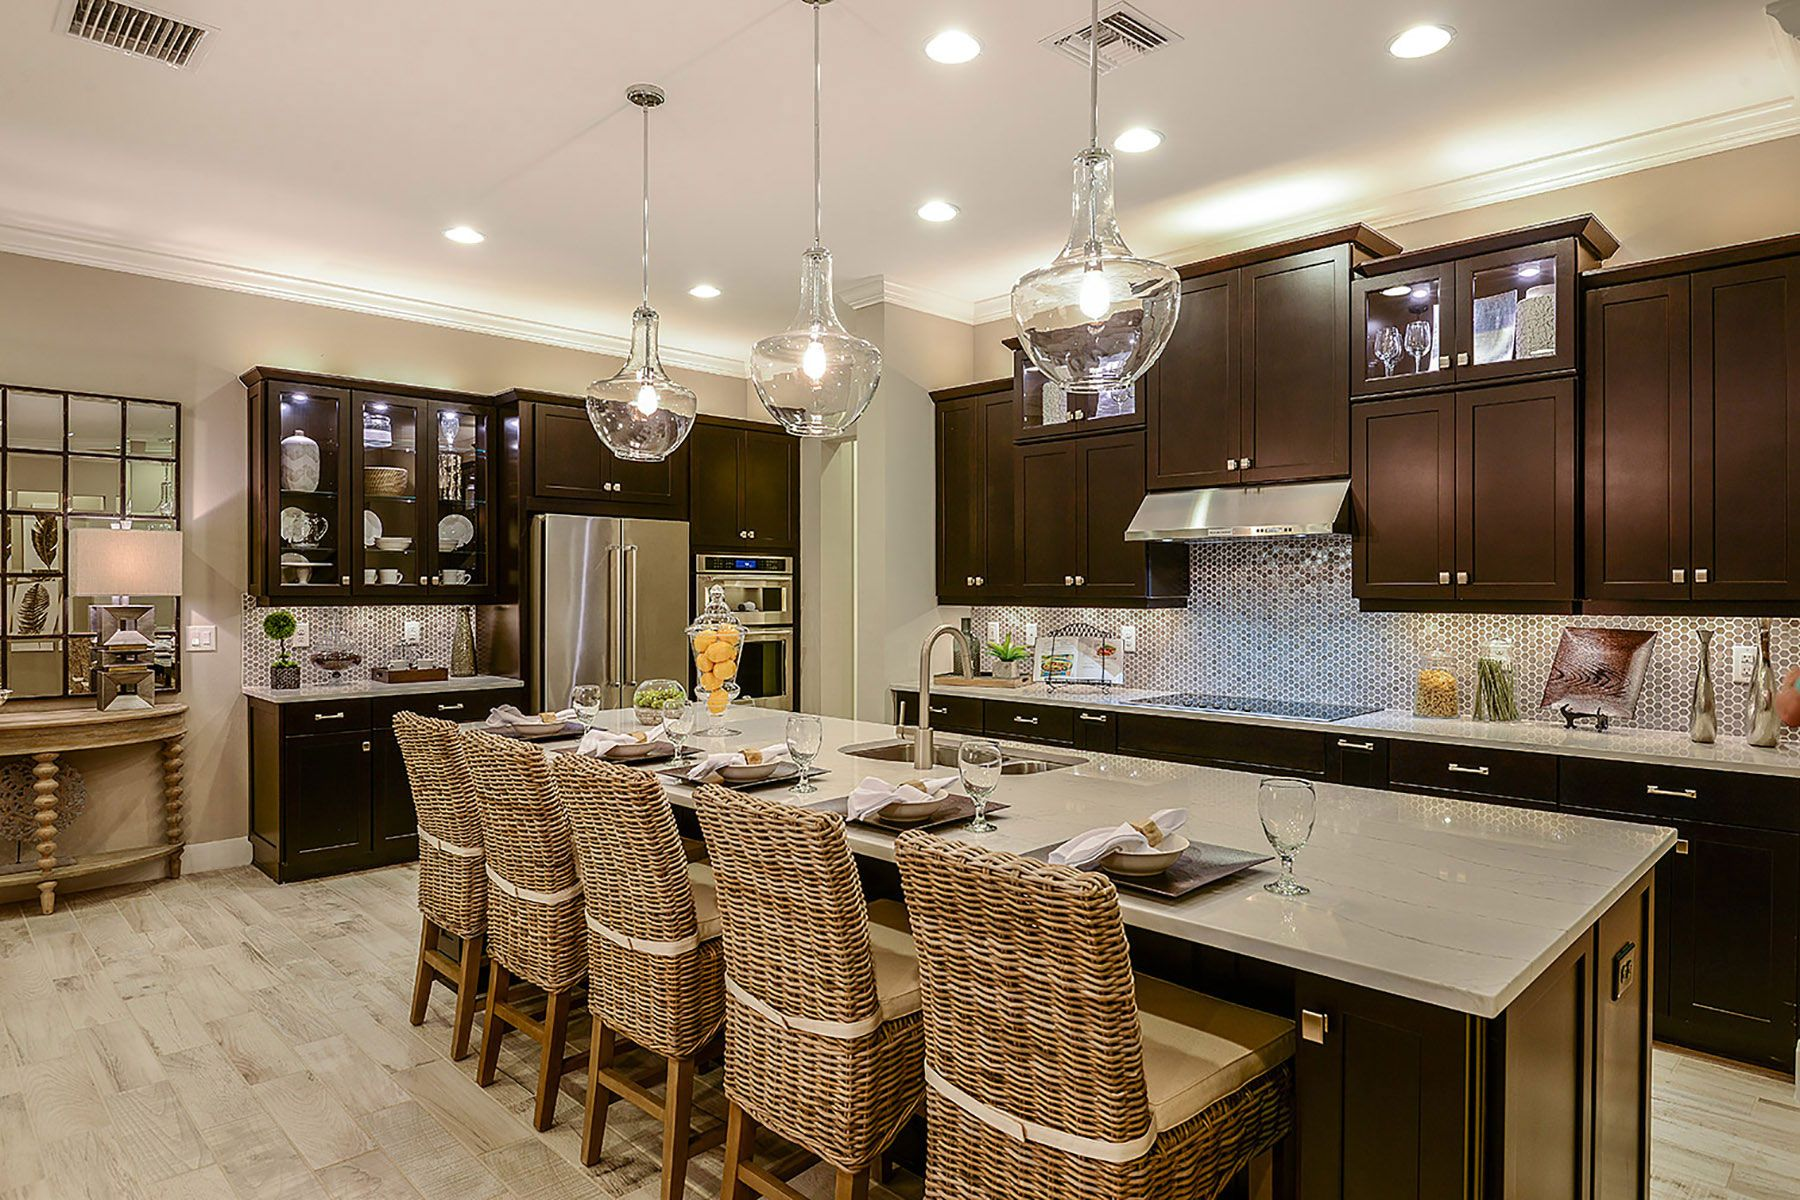 Kitchen featured in the Commodore By Mattamy Homes in Naples, FL